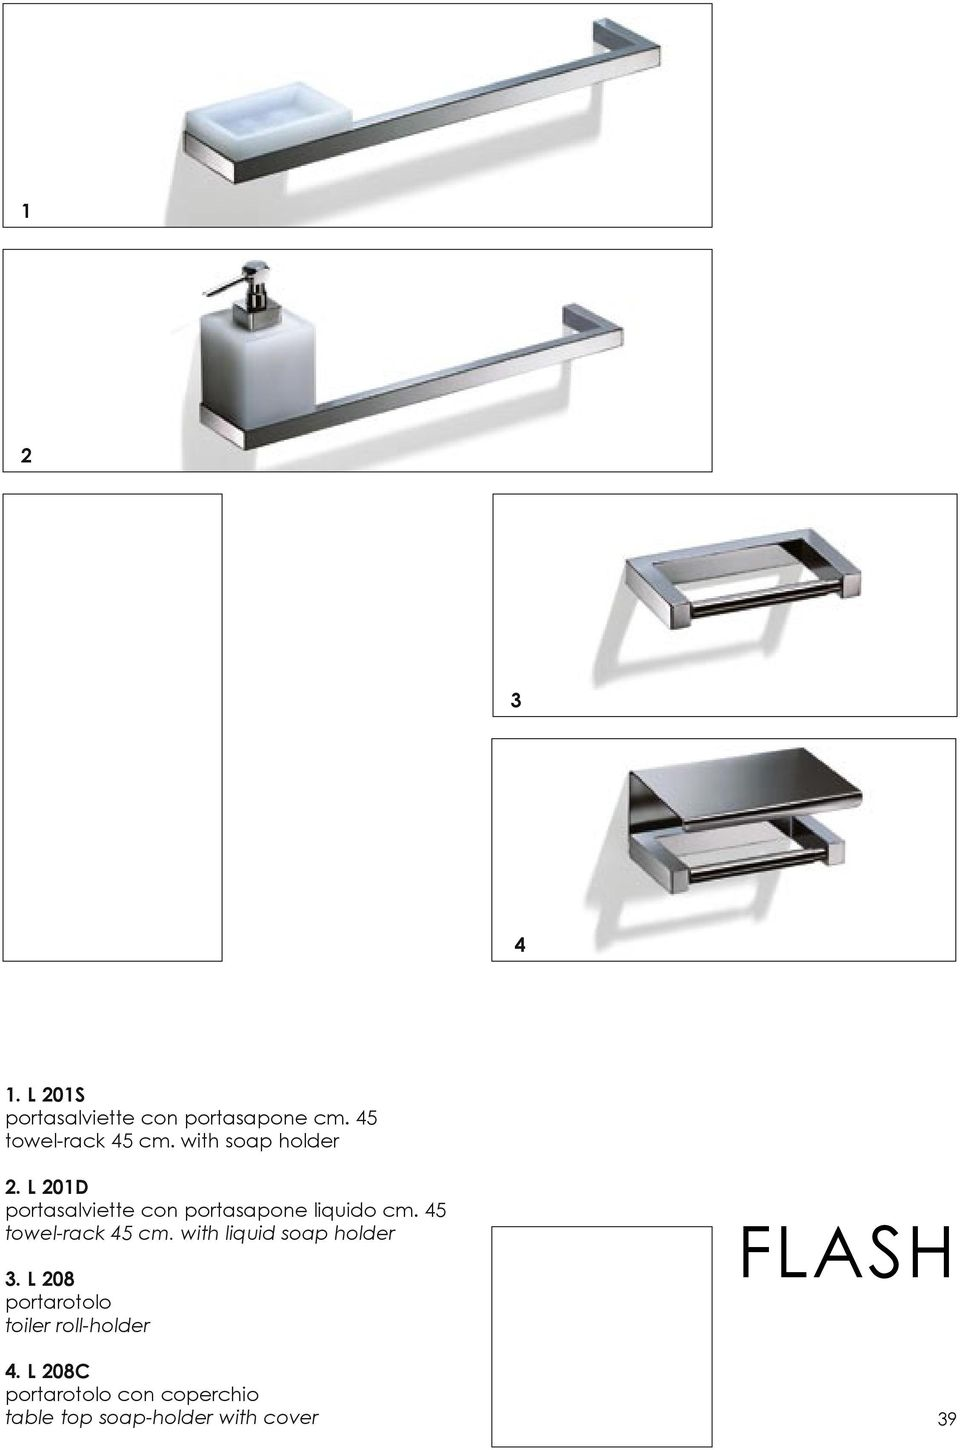 45 towel-rack 45 cm. with liquid soap holder 3.